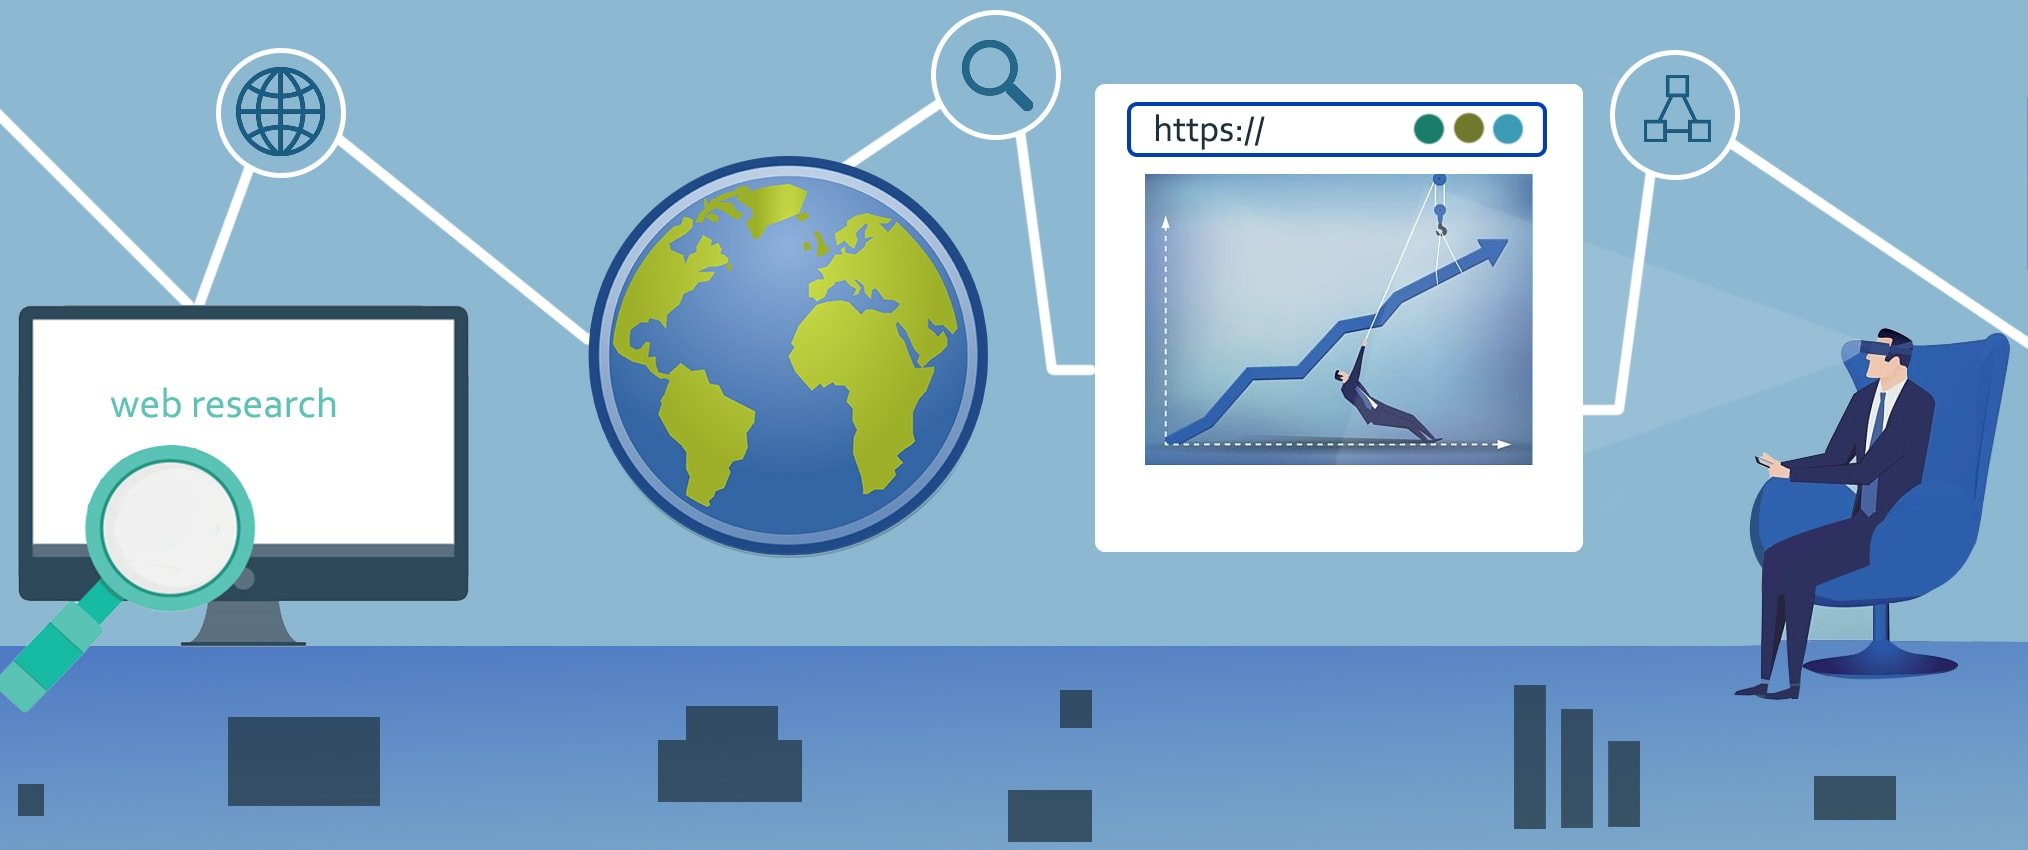 outsourcing-web-research-enhance-your-business